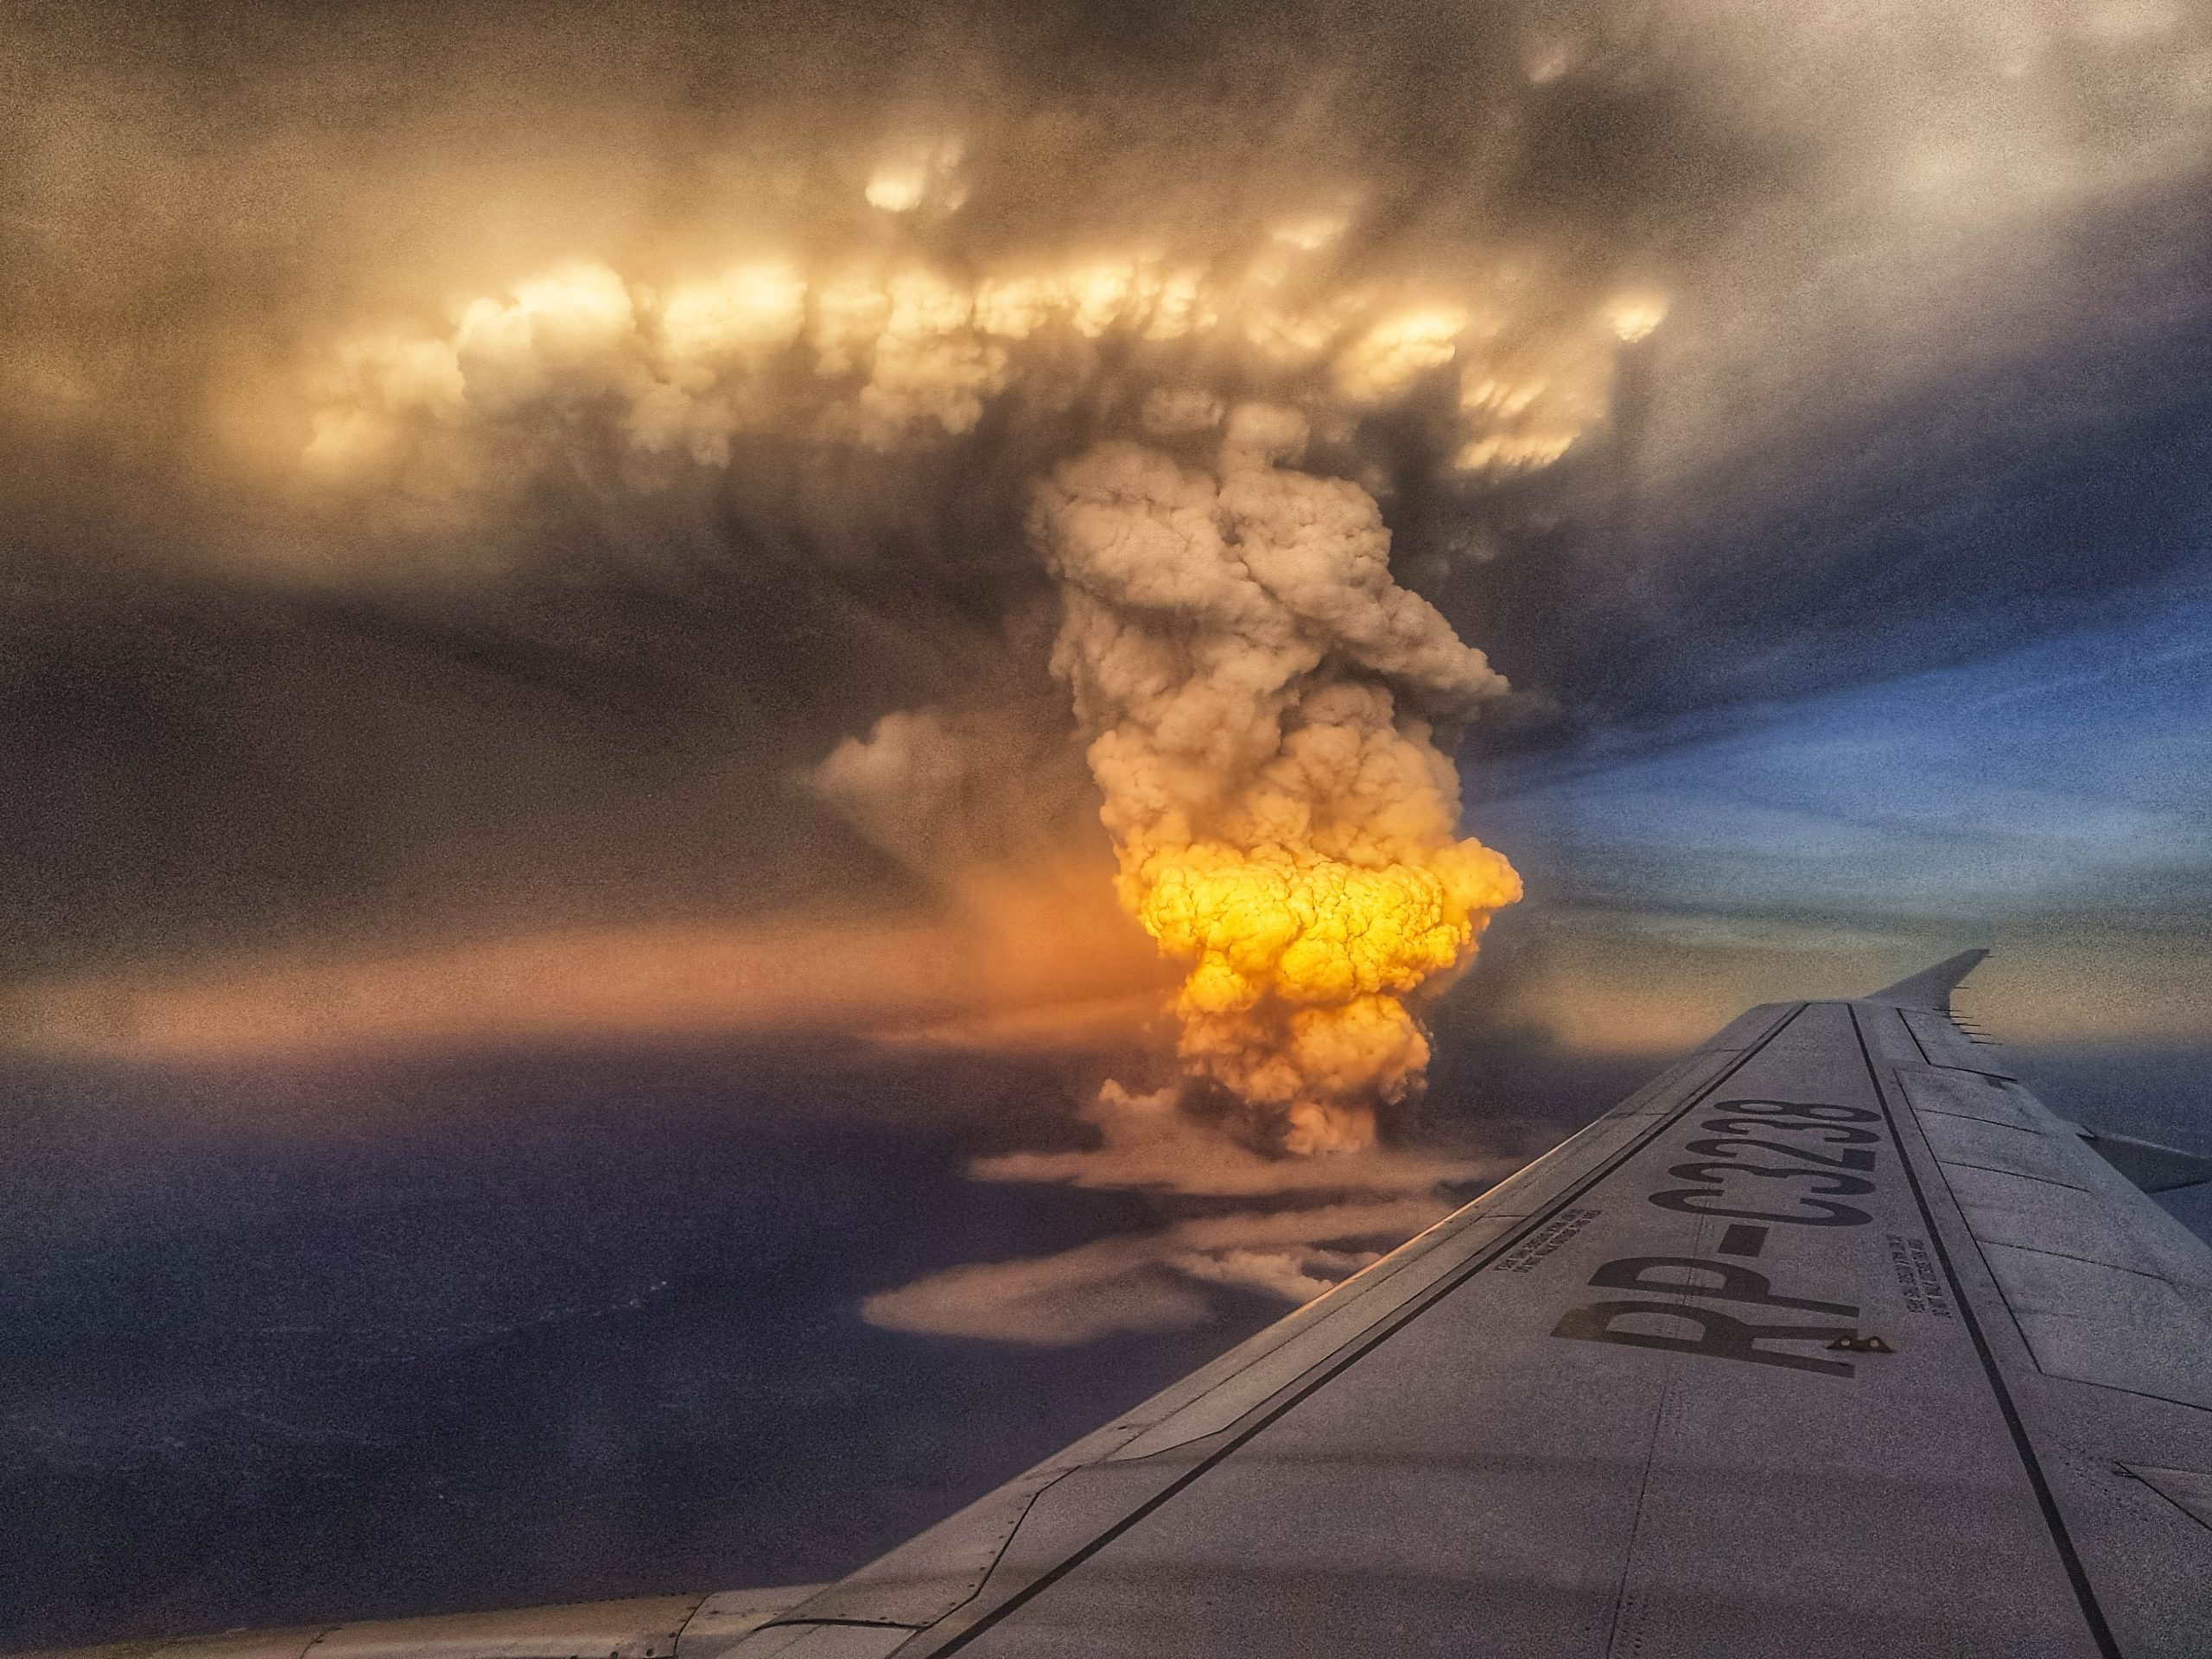 An aerial view of a volcanic eruption